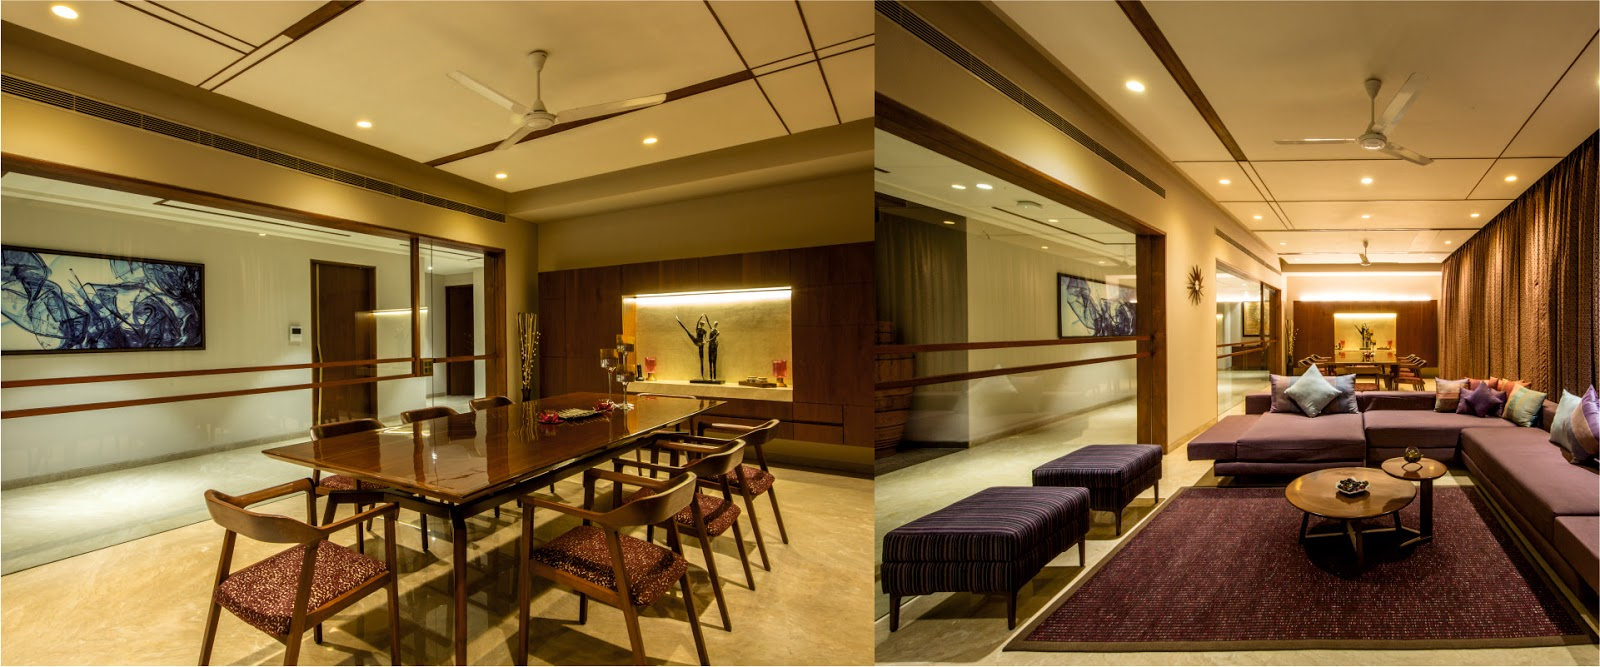 Top Architects In Ahmedabad Top Interior Designer In India